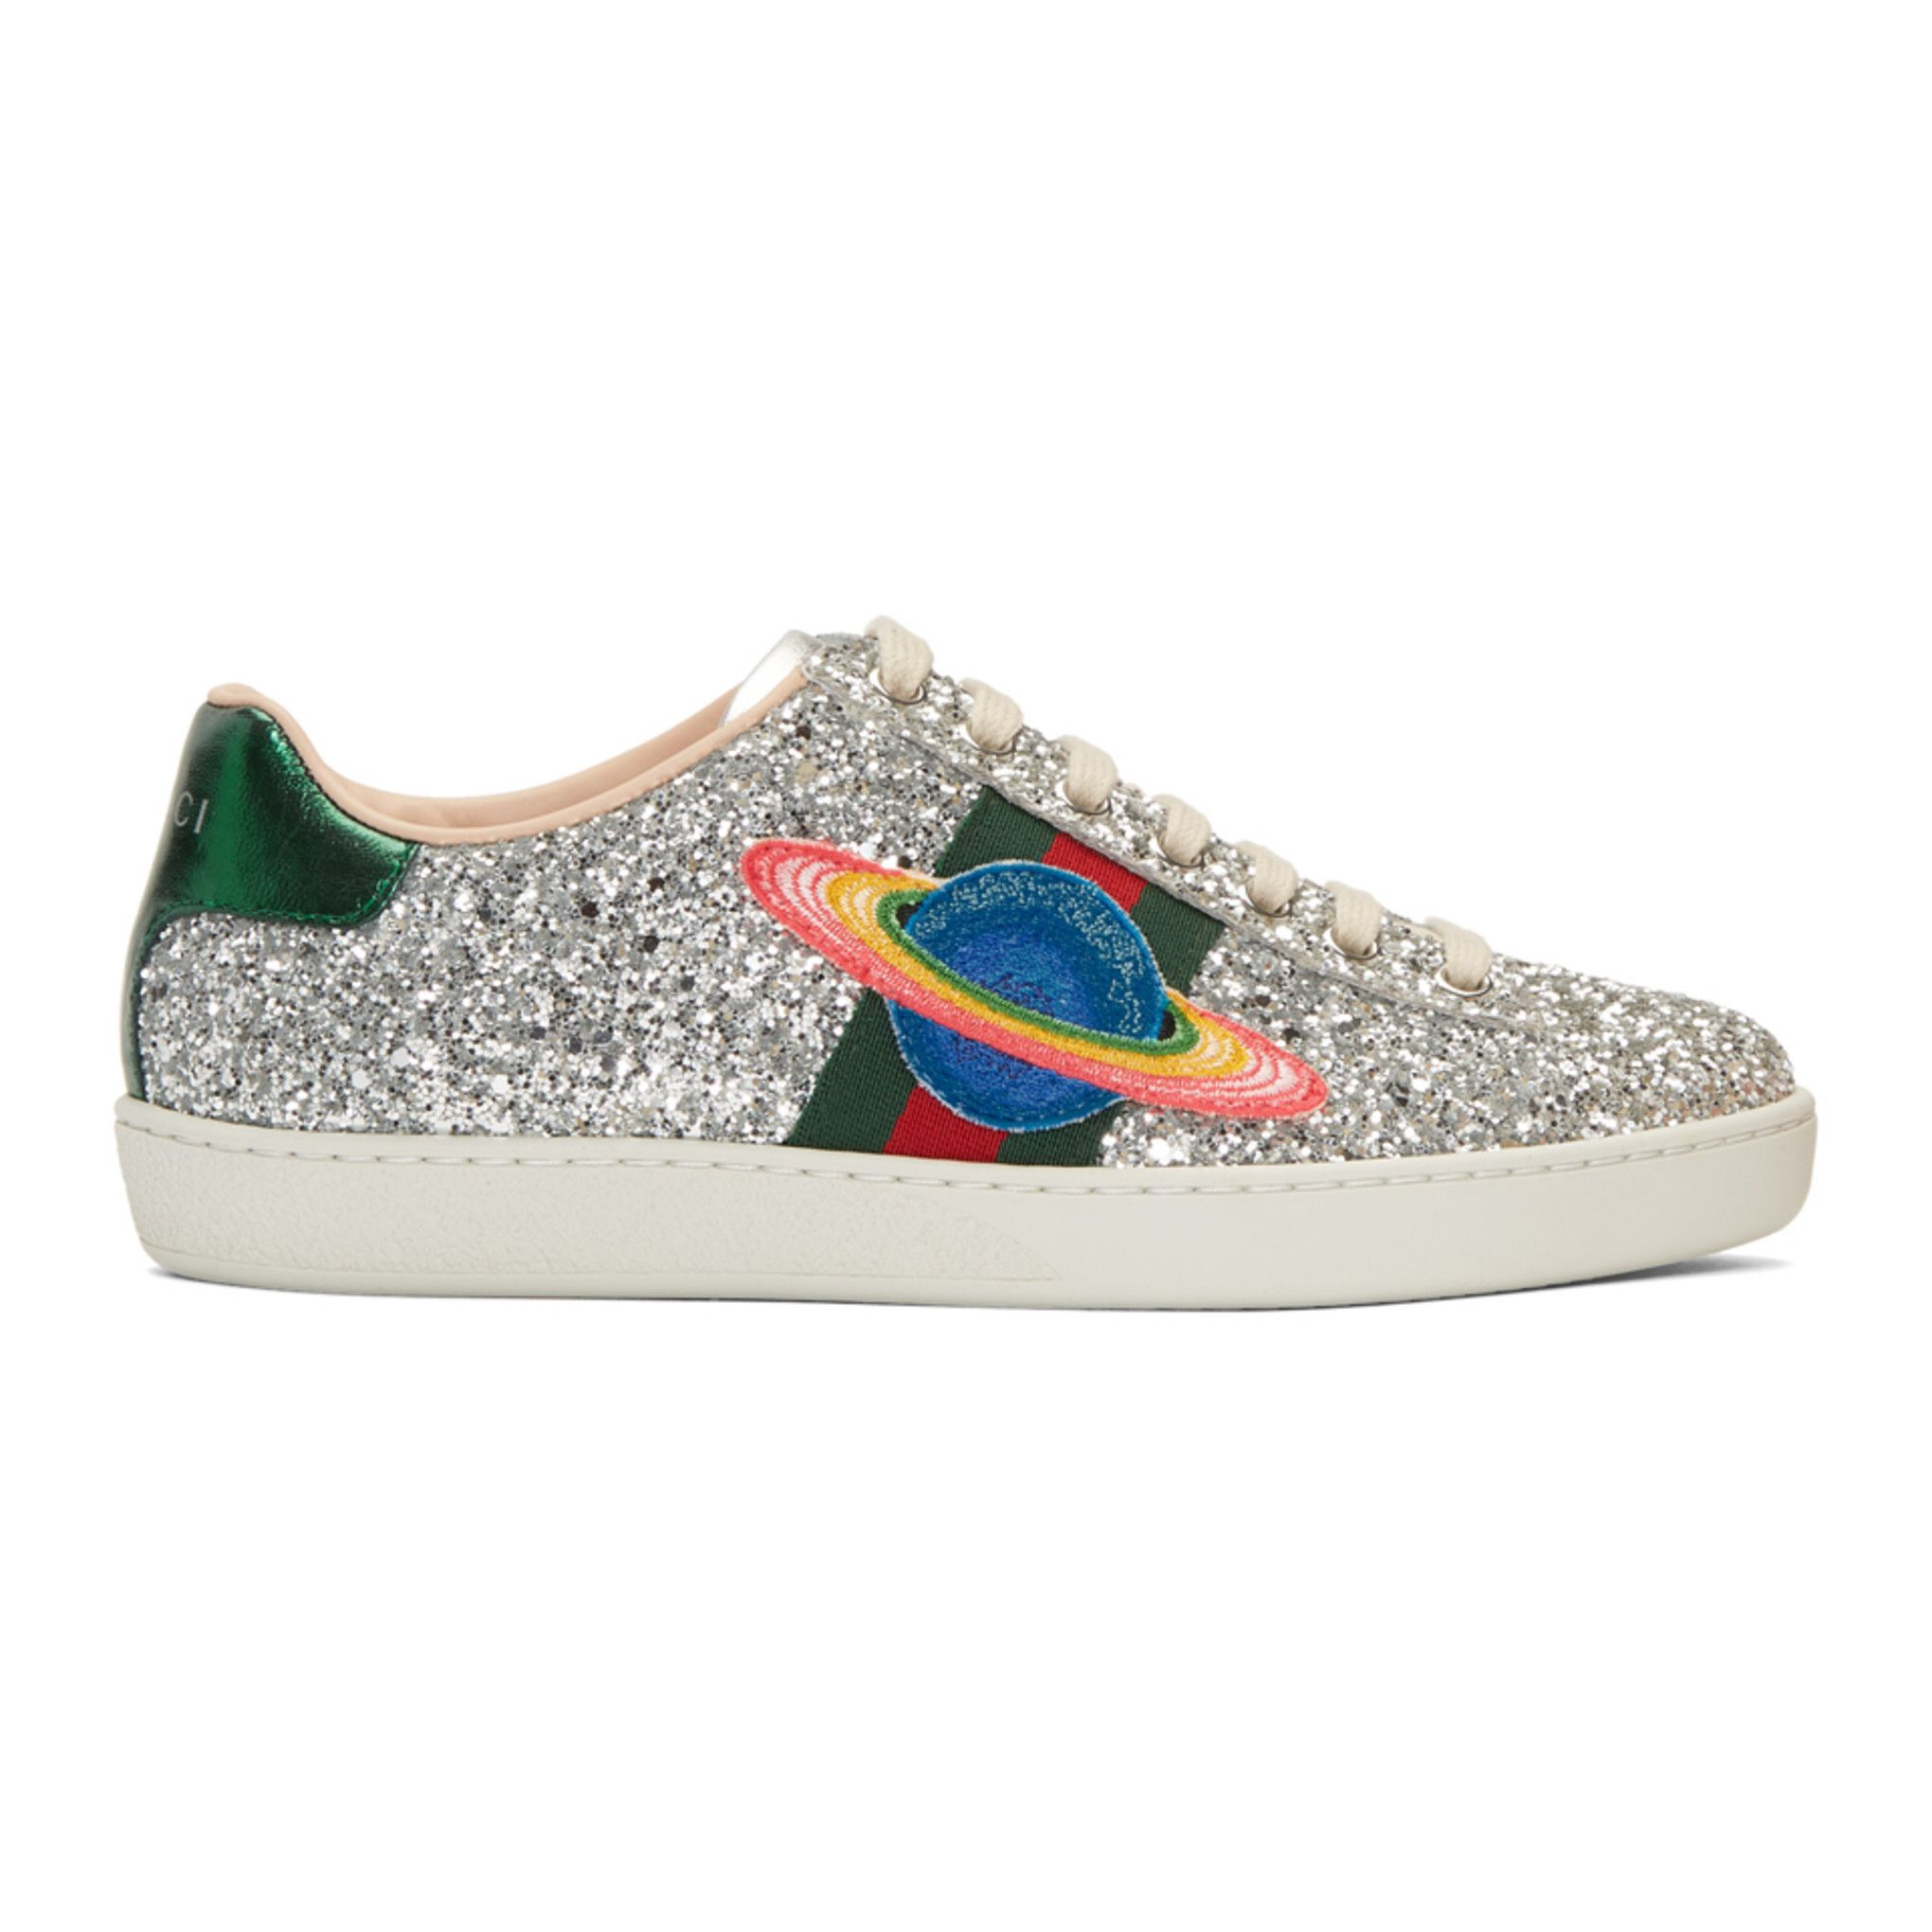 d9f7eedcede Gucci - Silver Glitter Planet New Ace Sneakers